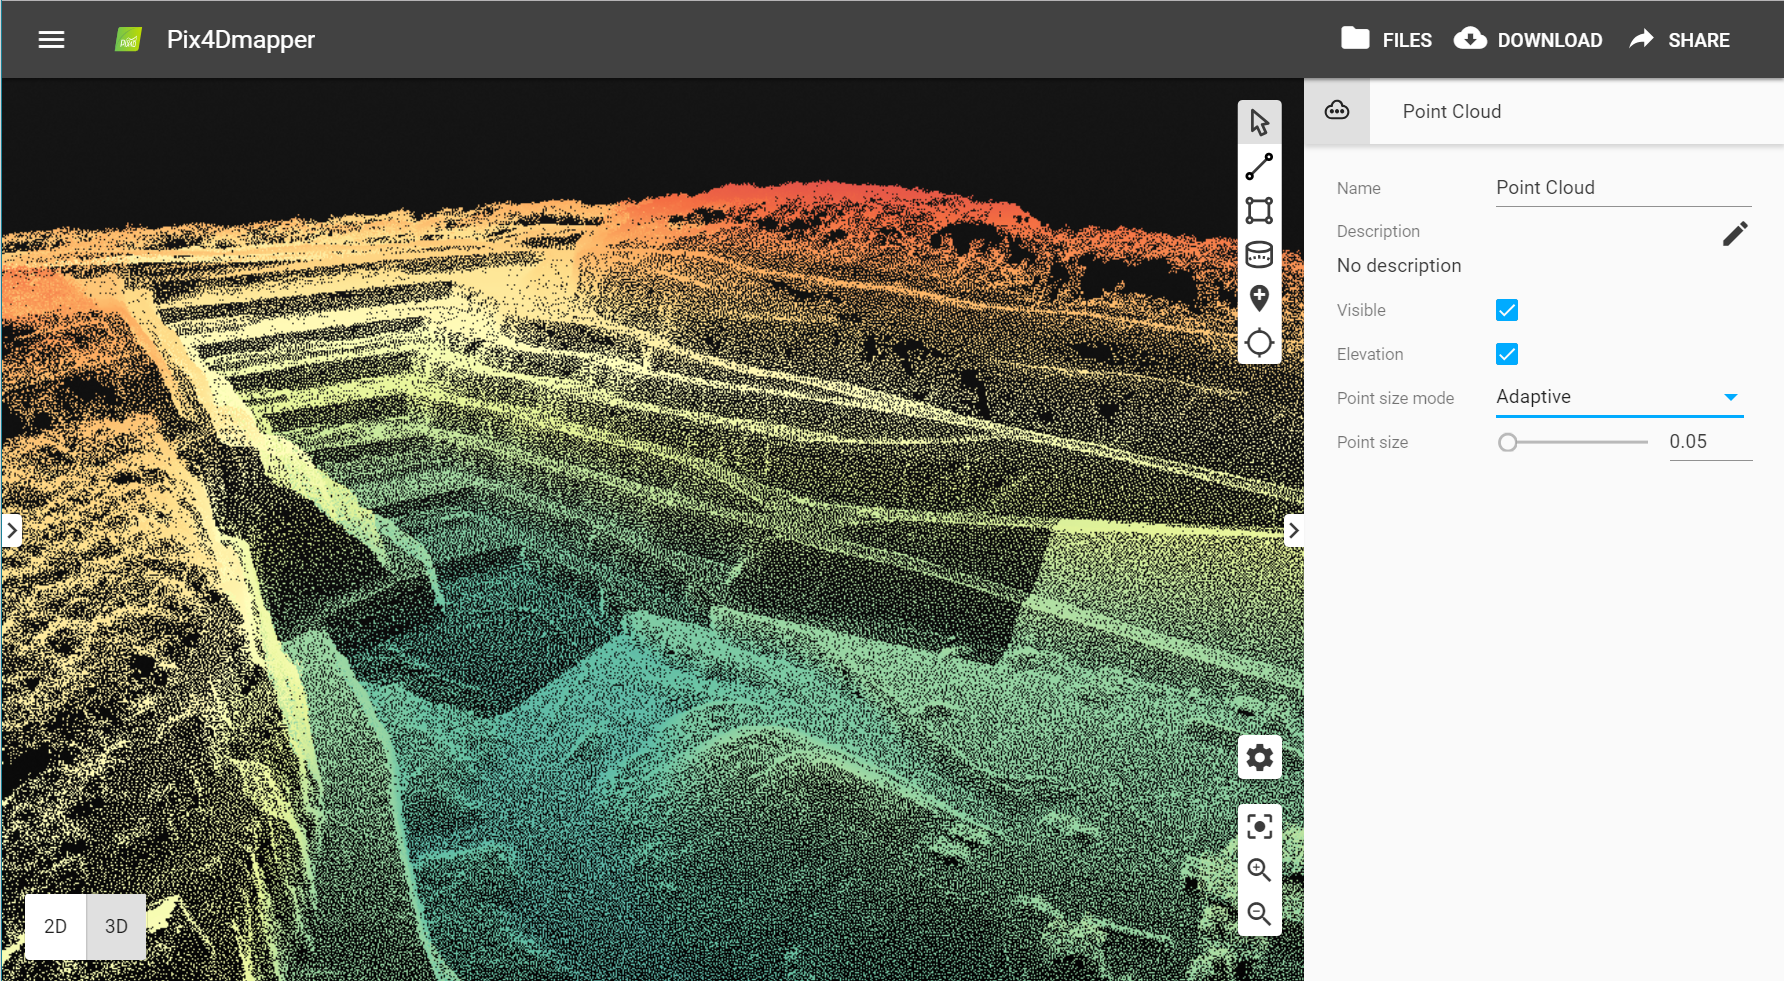 The new elevation point cloud color scale